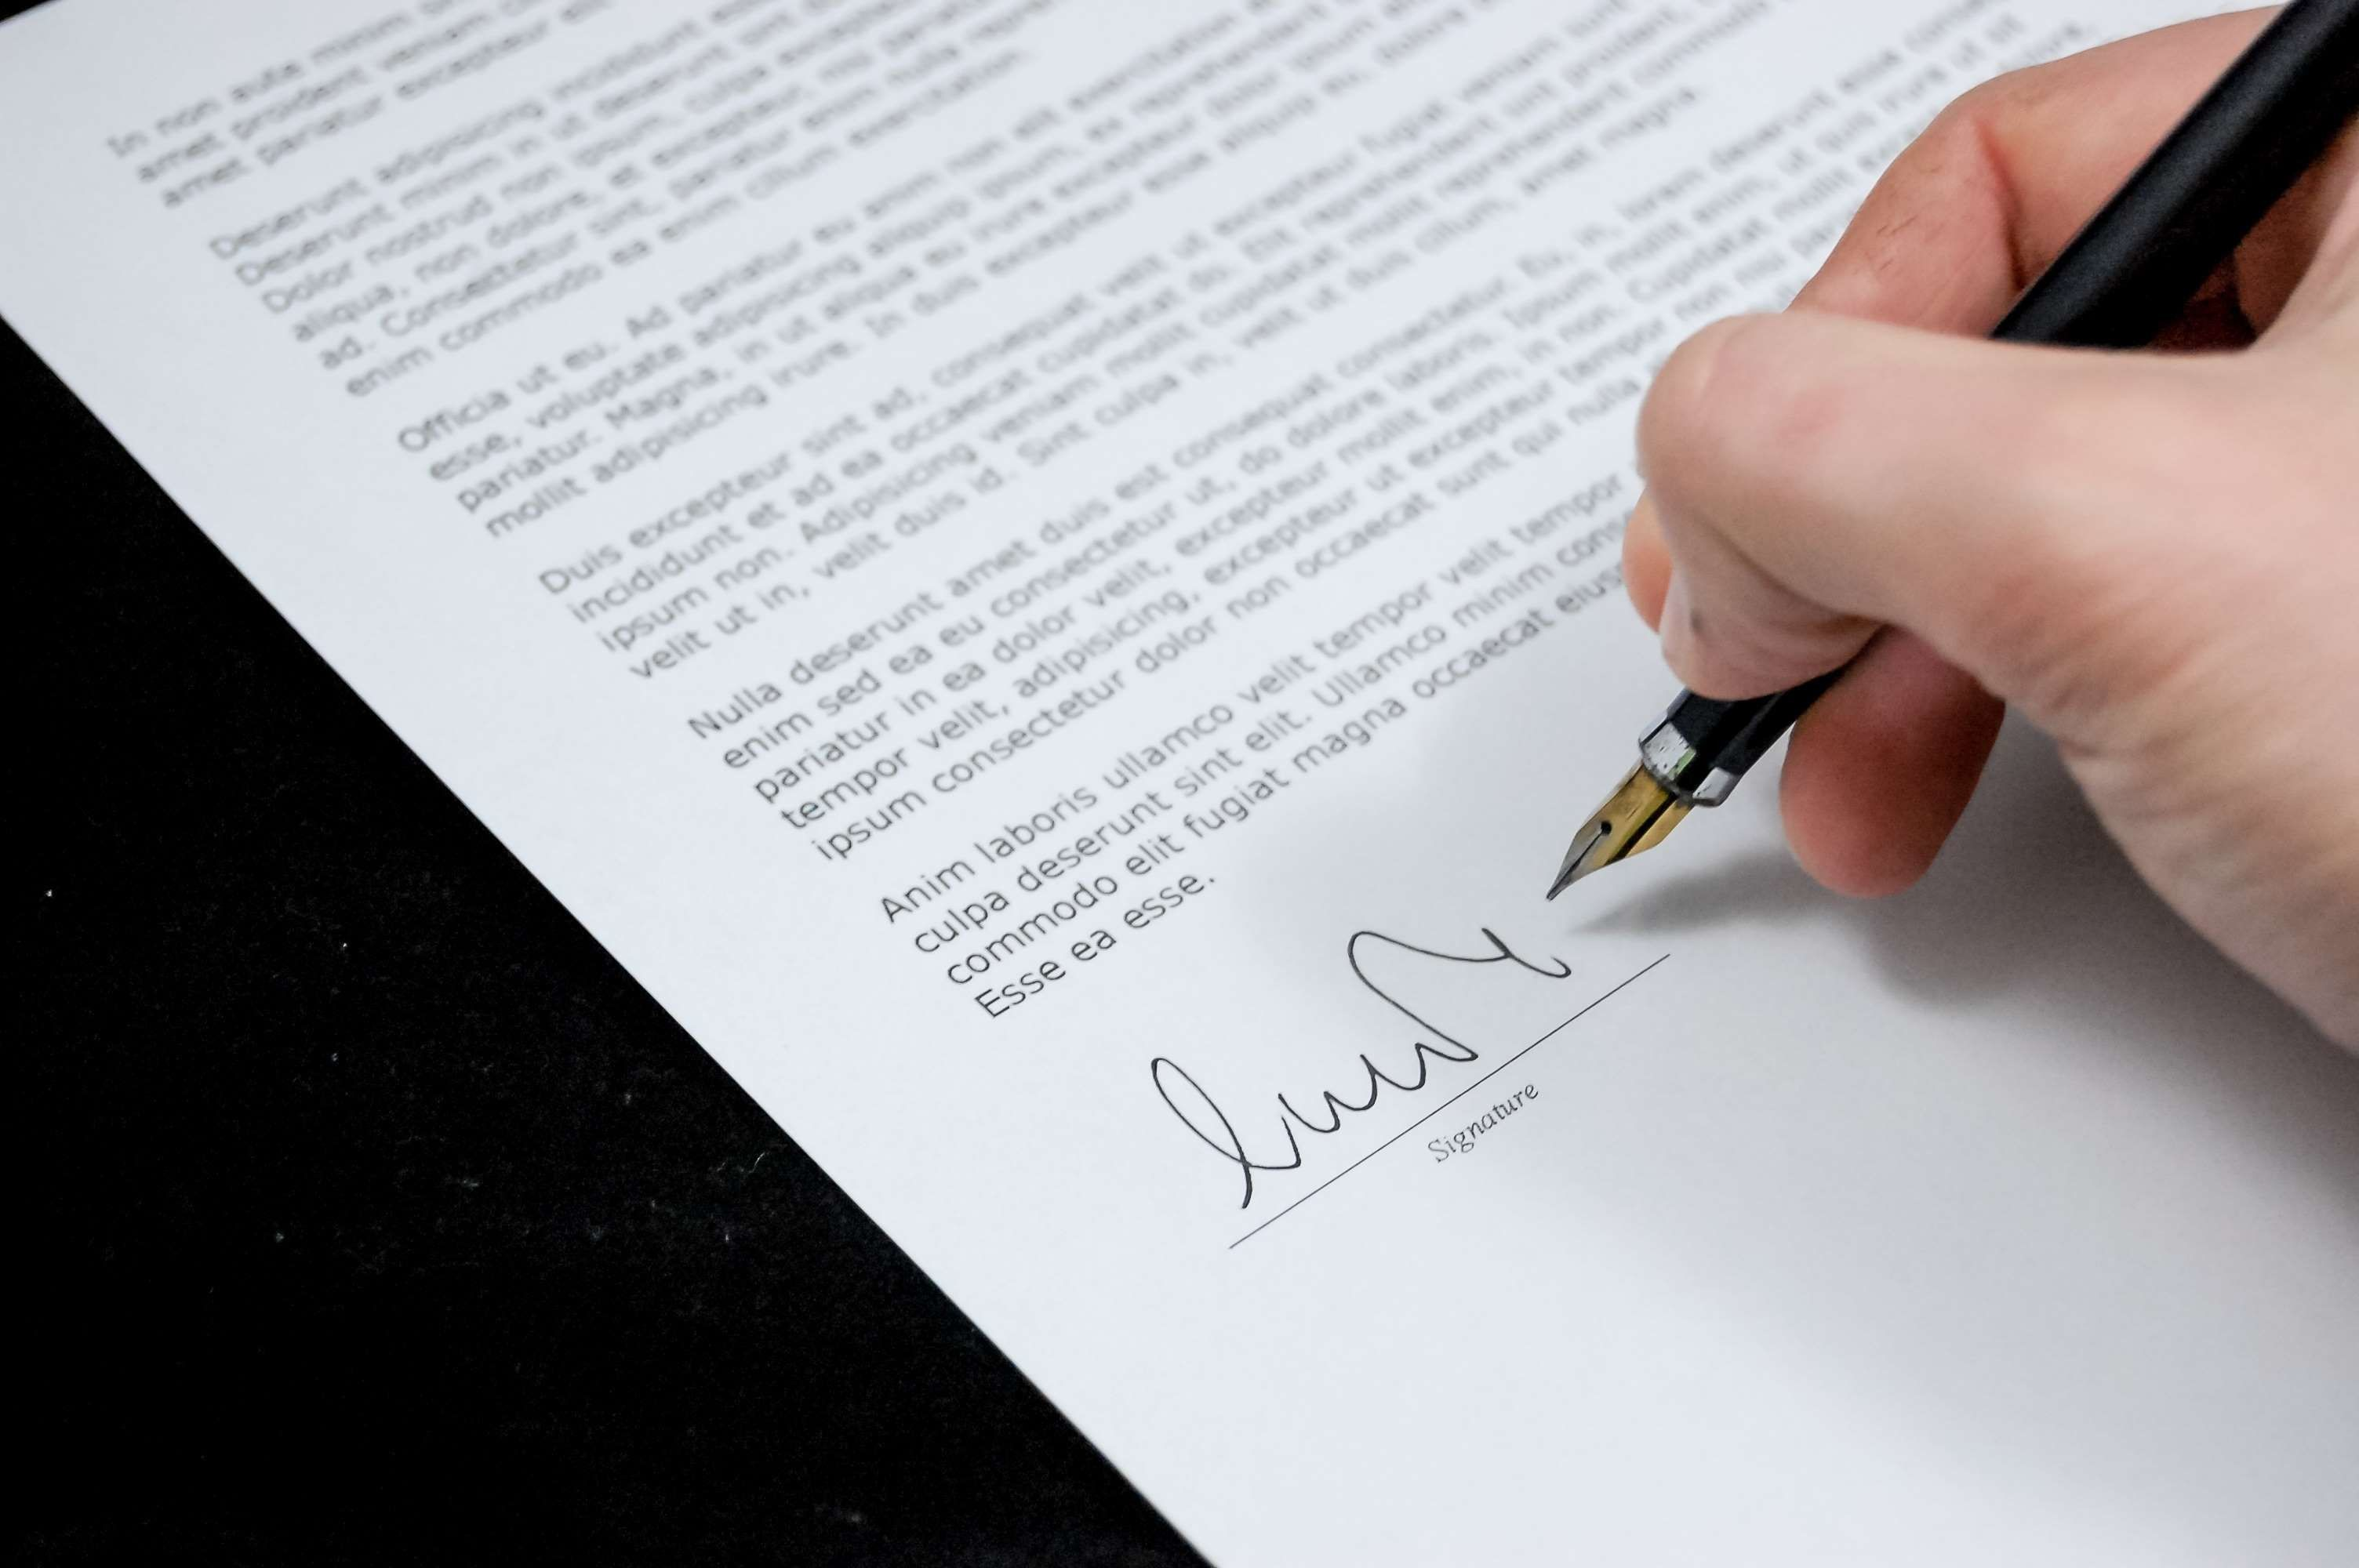 Res: 3008x2000, agreement, business, businessman, contract, document, expertise, finger,  hand, handwriting, human, legal, letter, paper, pen, person, professional,  report, ...